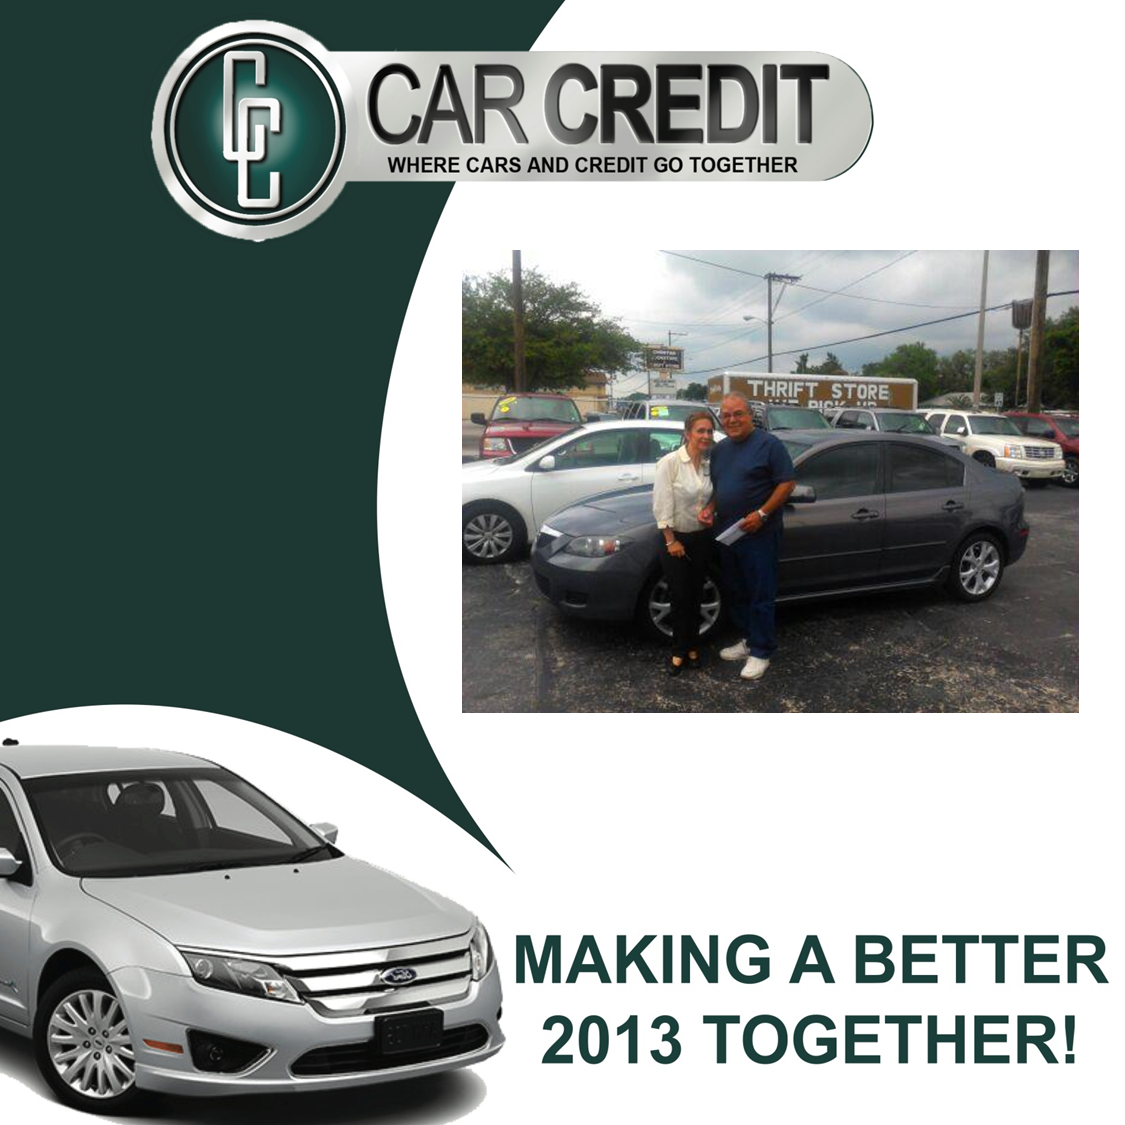 Anotherhappycustomer Carcredit Usedcars Tampa Www